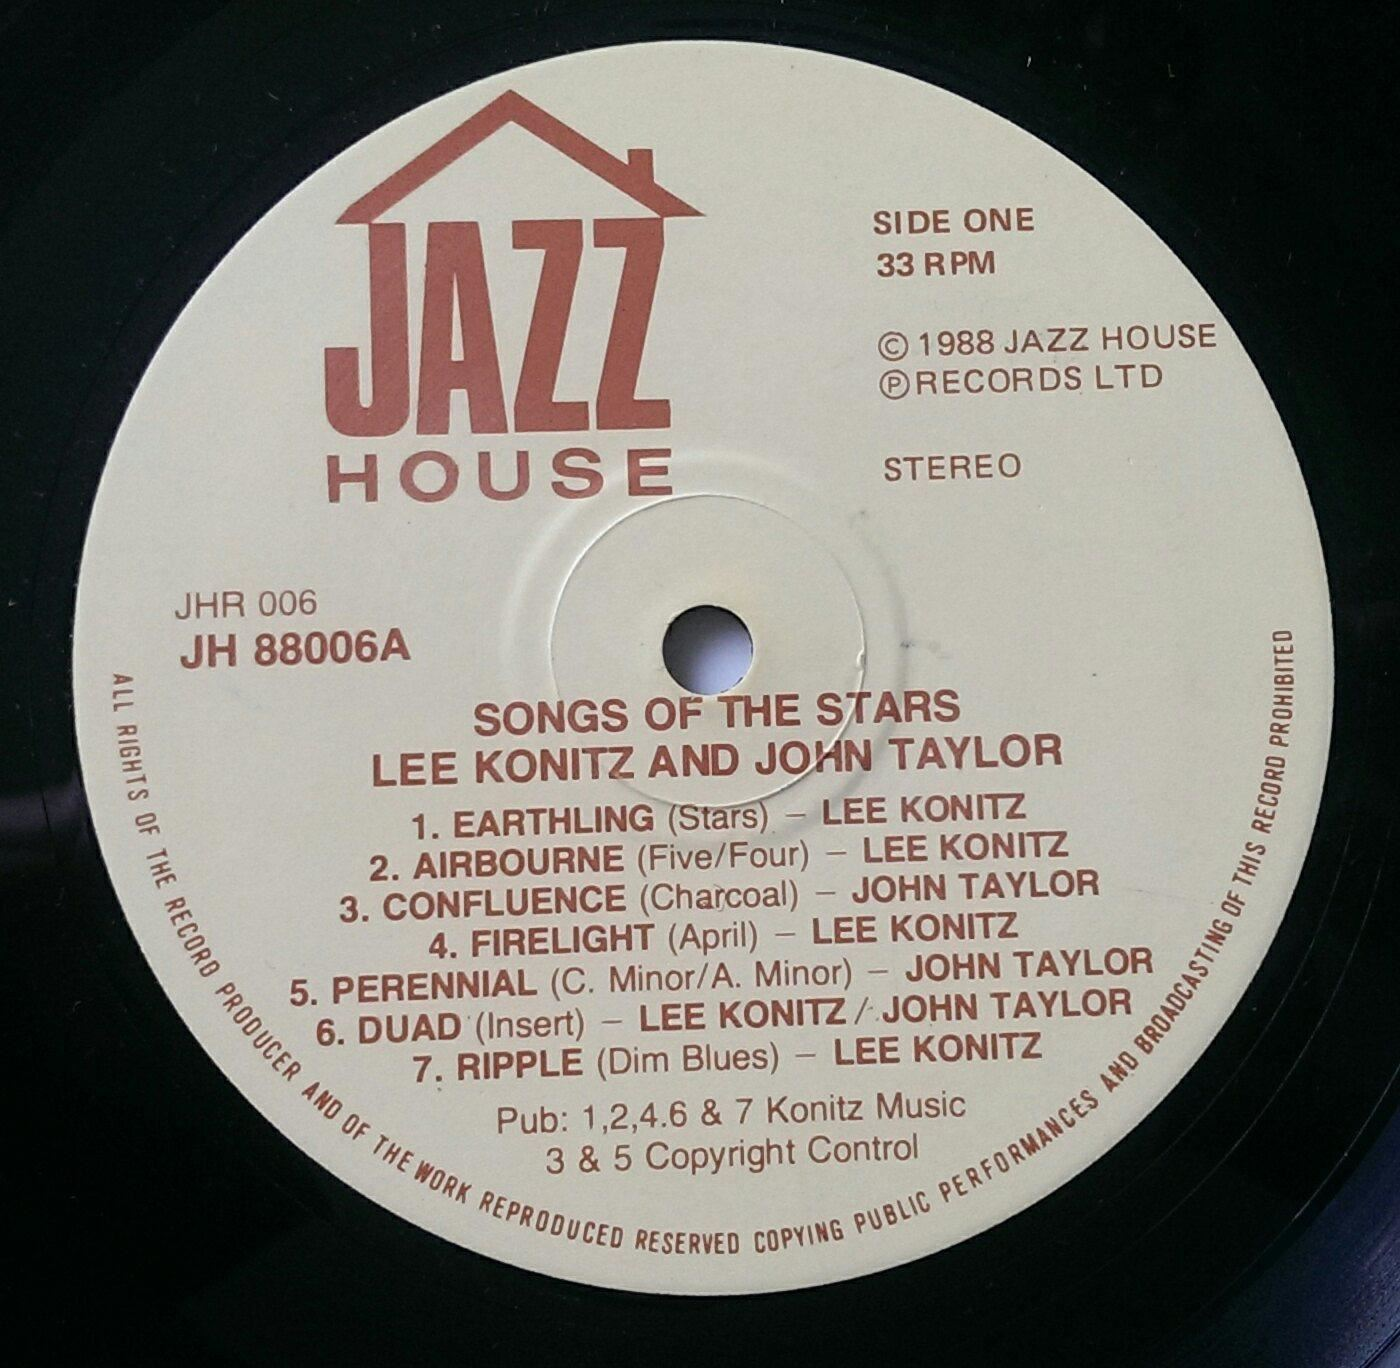 Songs of the stars no sleeve uk 1988 lee konitz ebay for Songs from 1988 uk